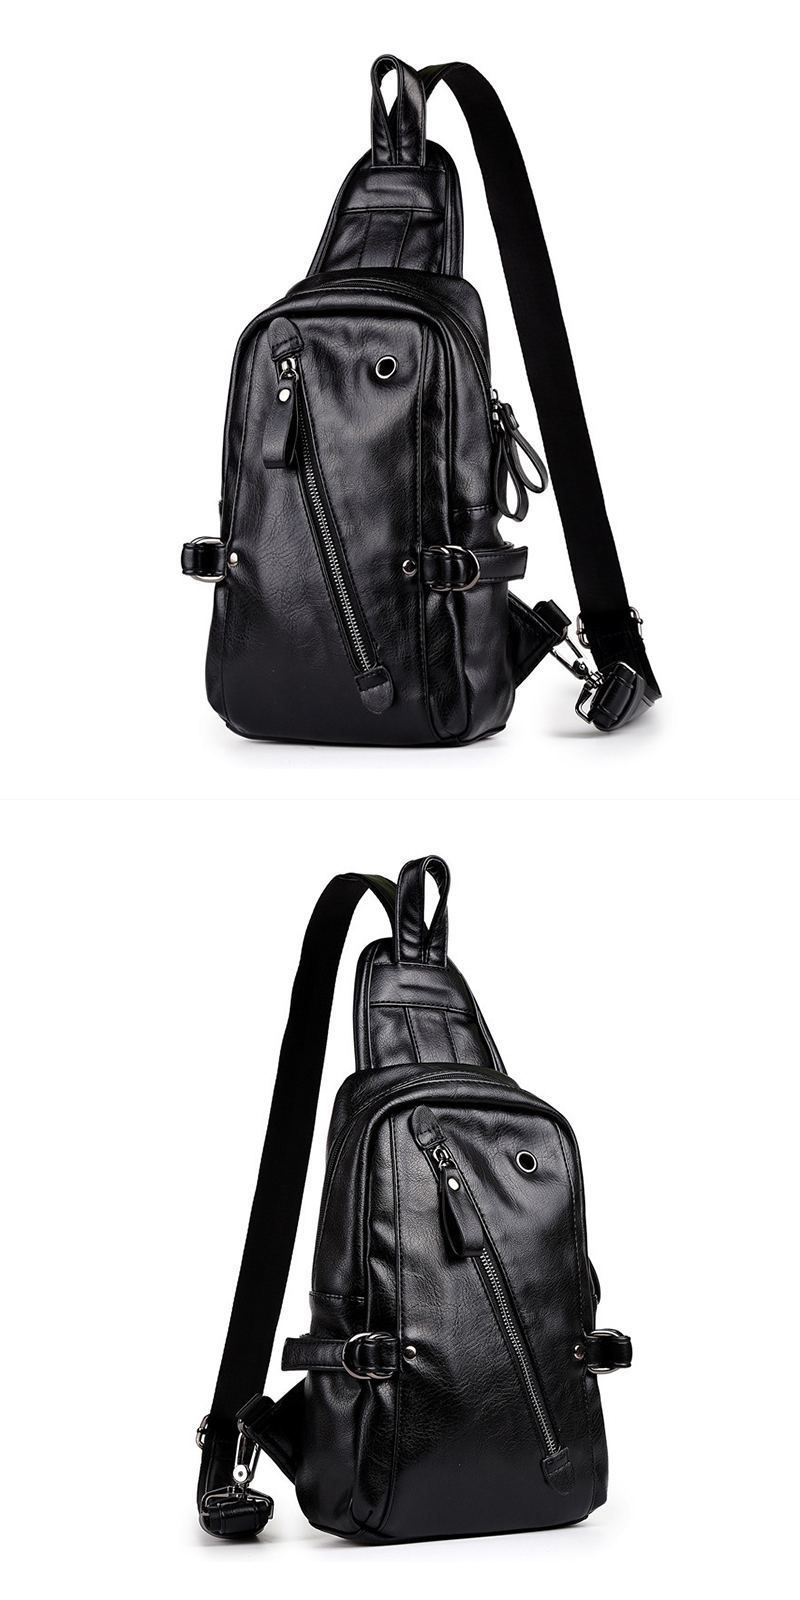 38a56a2389fc Wholesale New Arrival Fashion Men Crossbody Casual Style PU Bag ...